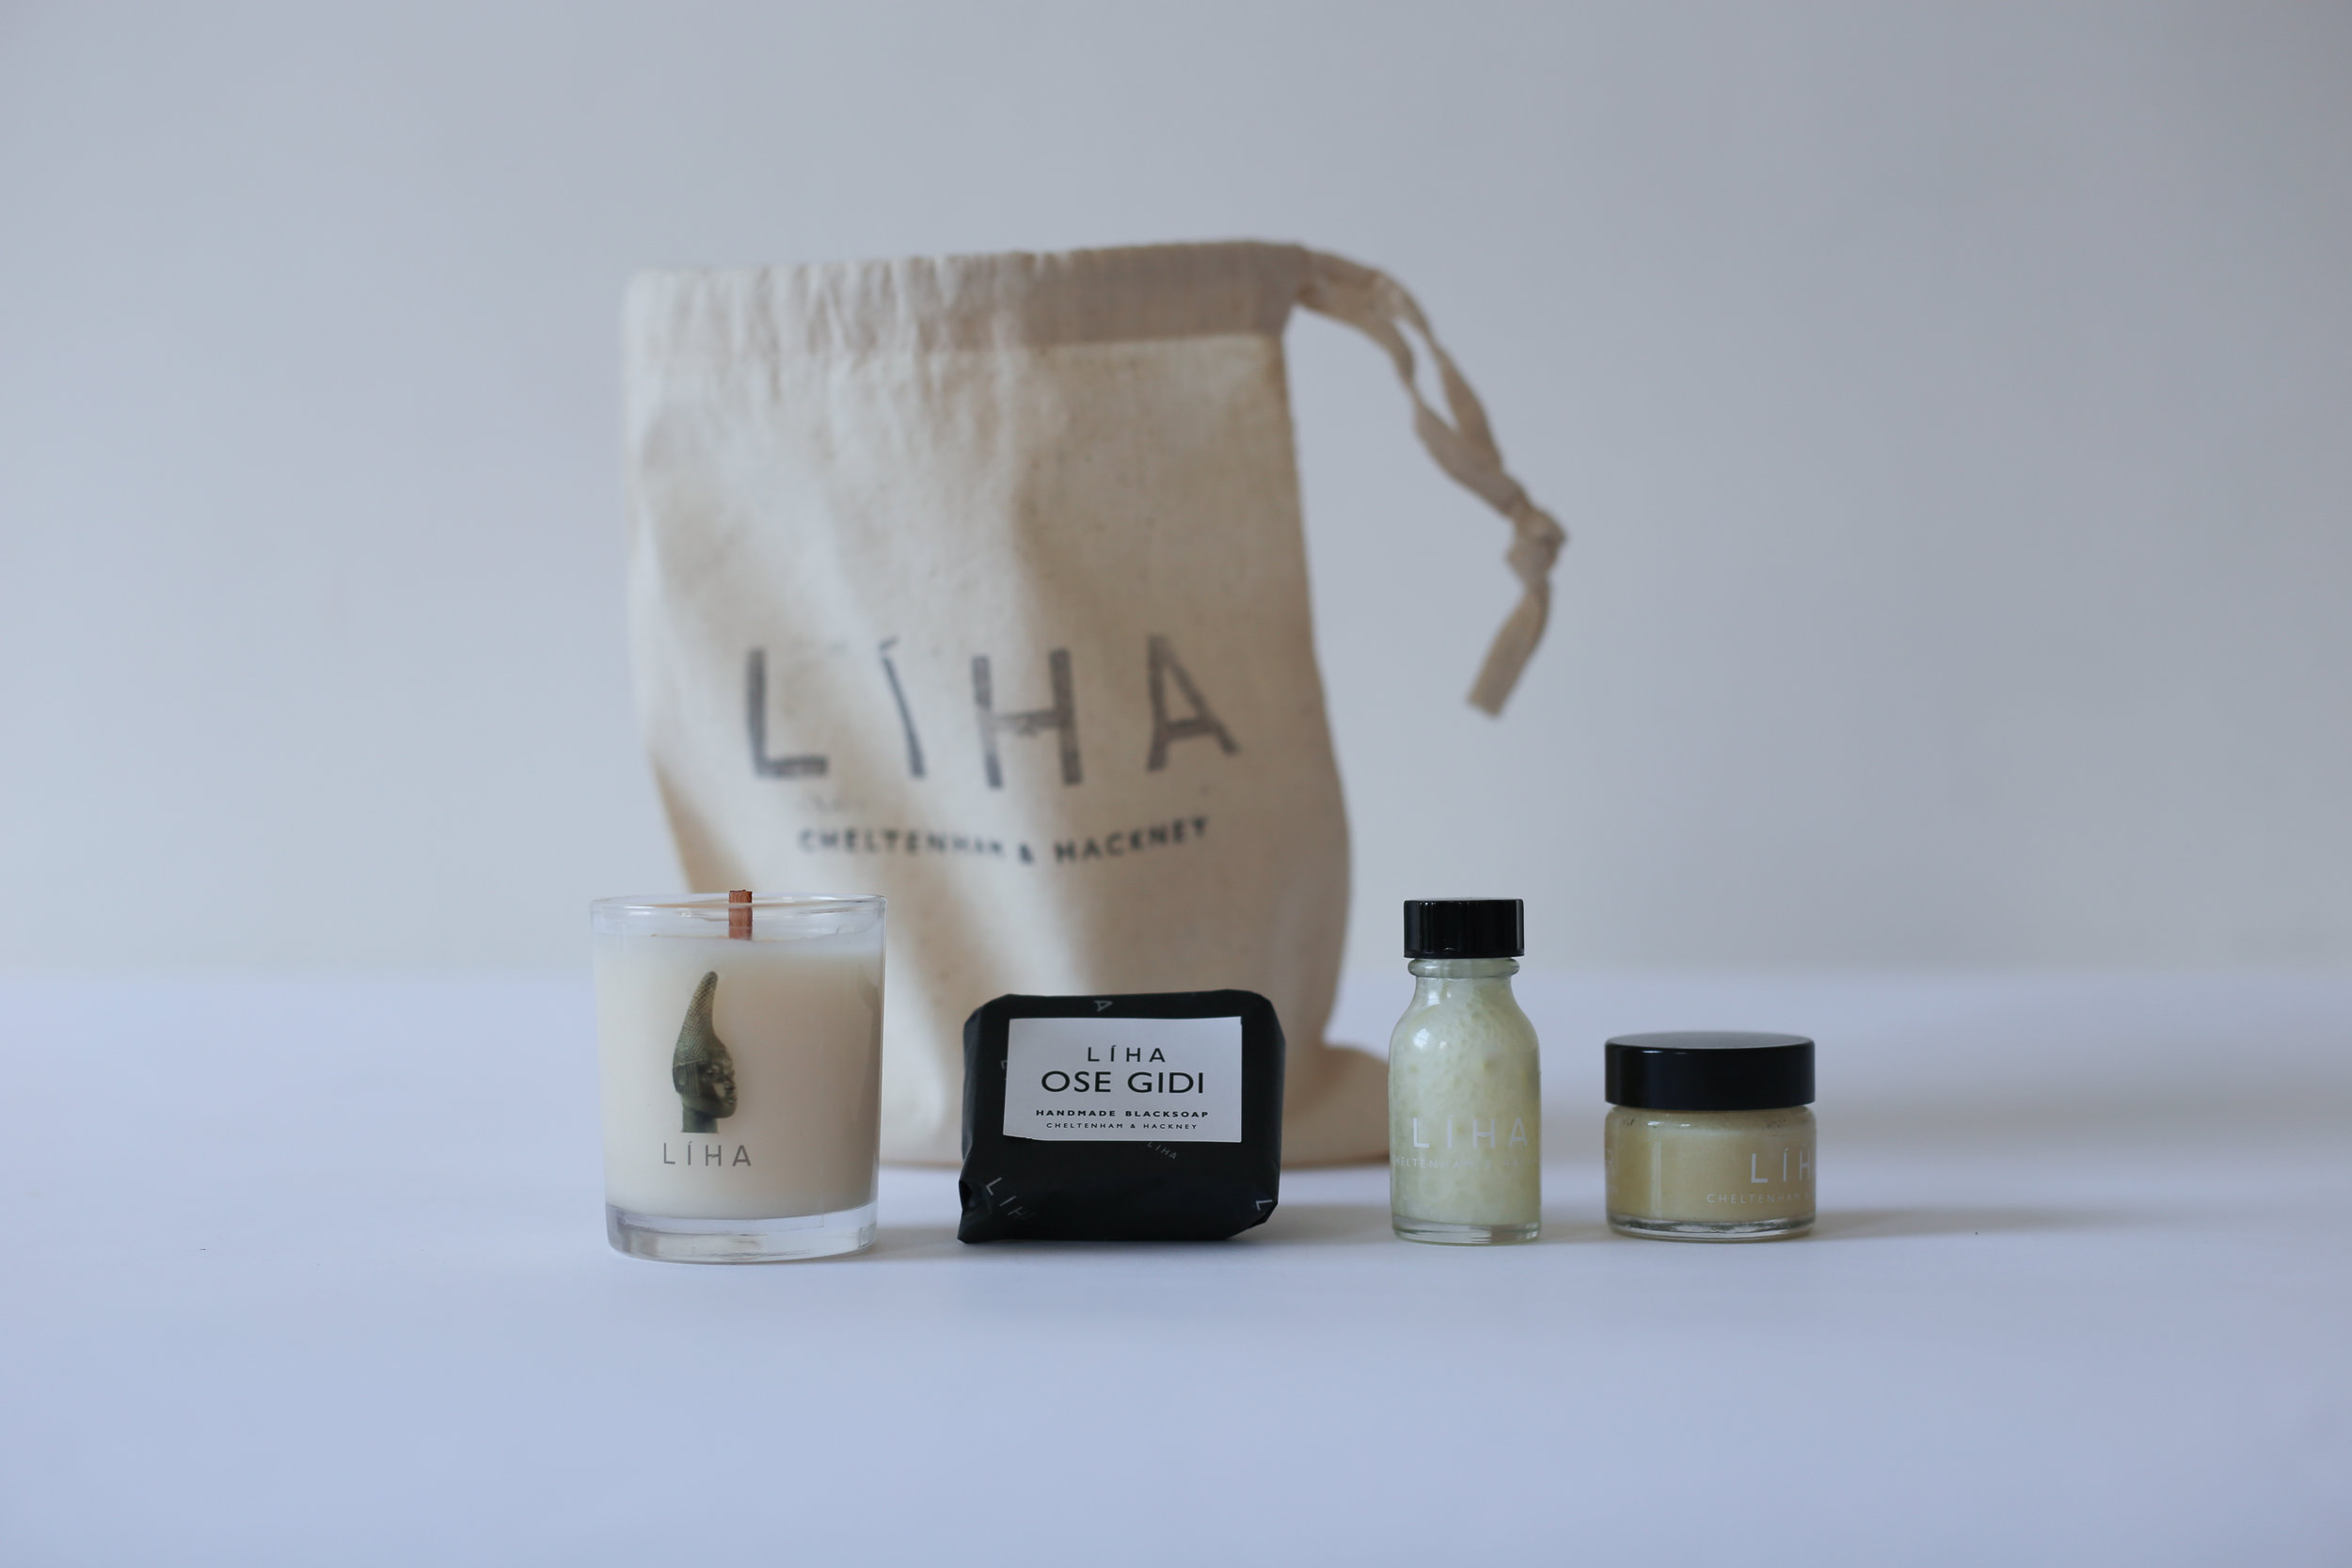 Liha Beauty - Meet the Maker / 91 Magazine